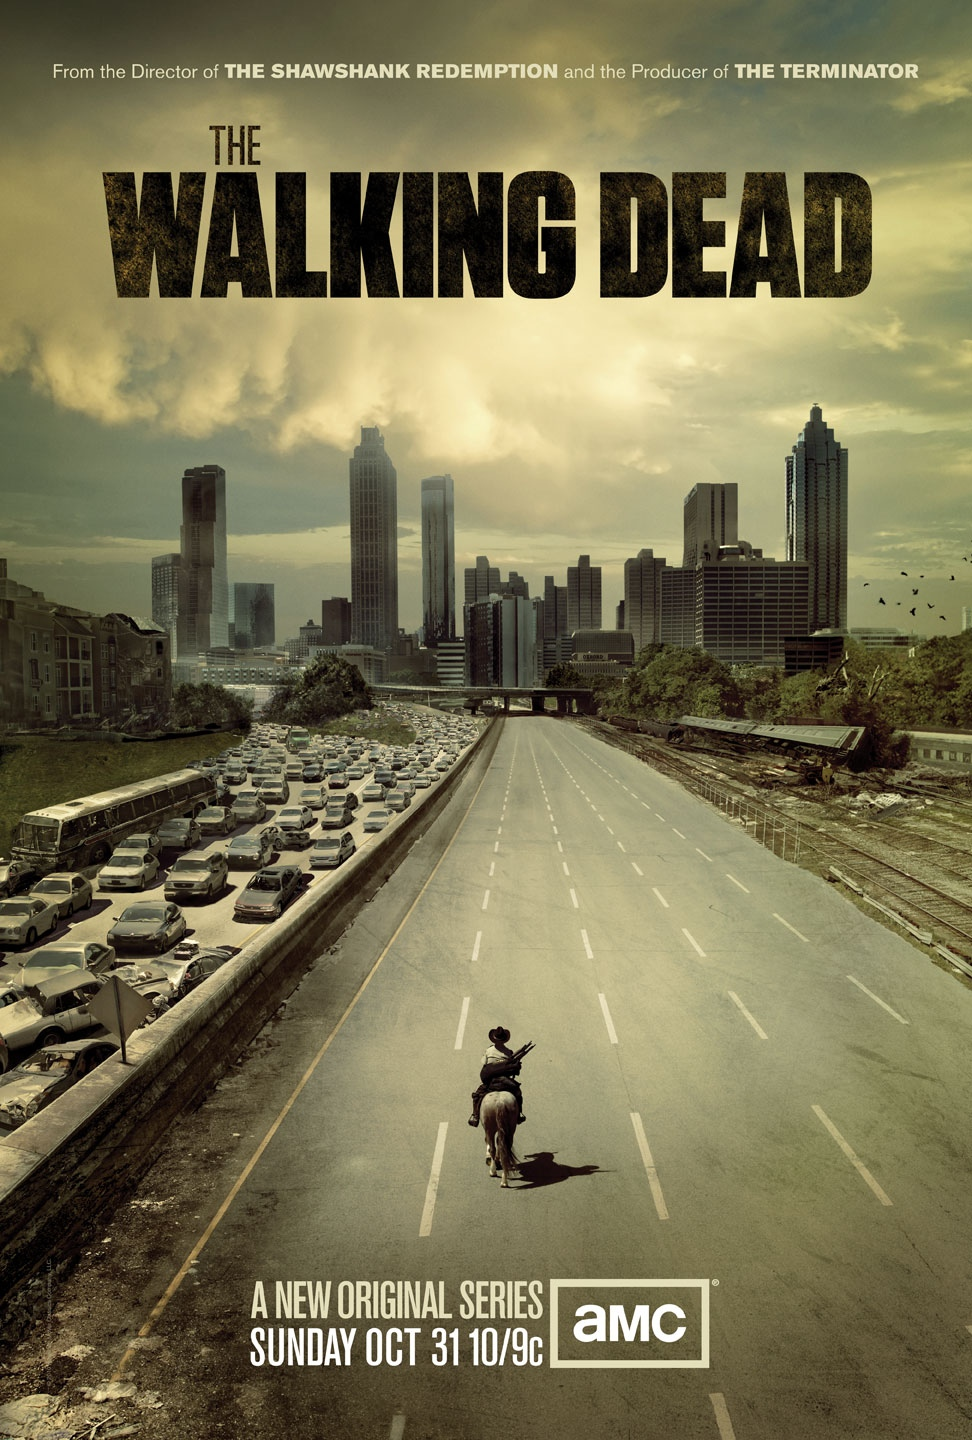 Poster for The Walking Dead is pretty empty of dead folk